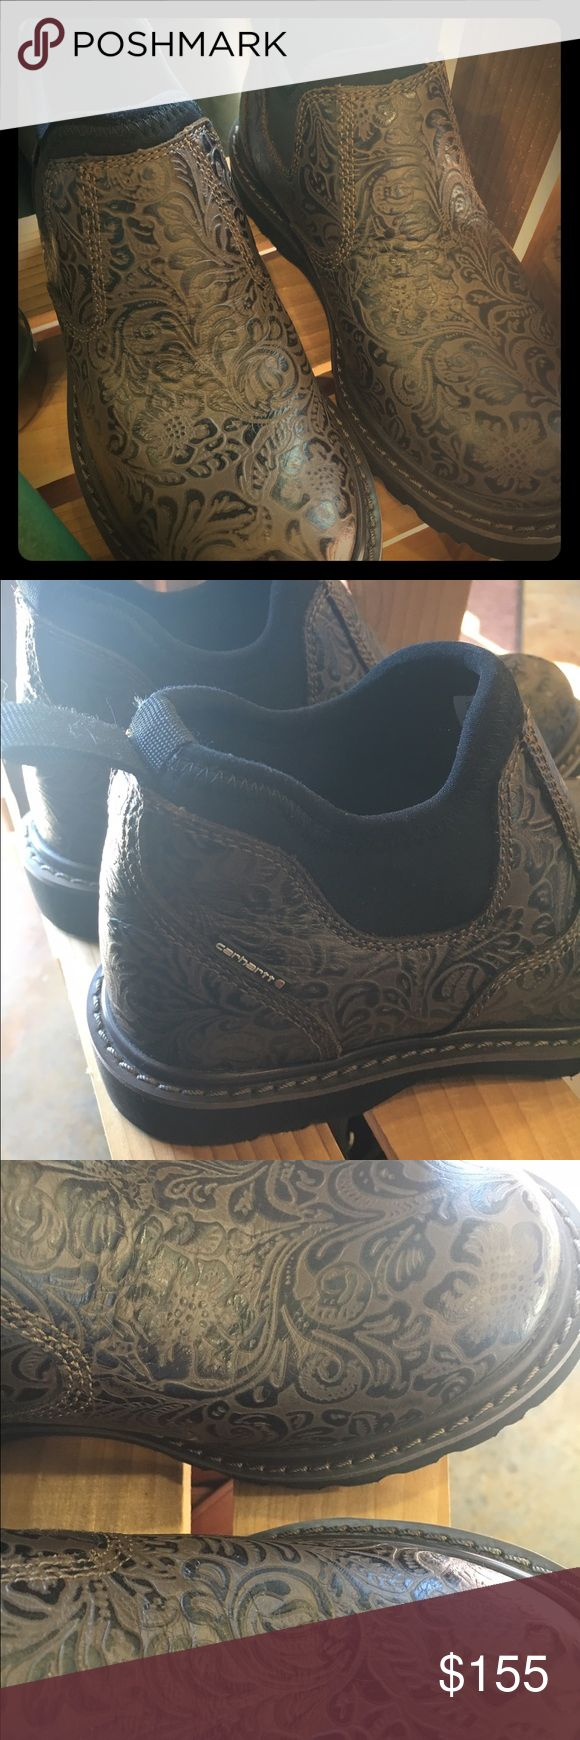 Carhartt paisley Romeo boot Brand new never worn. Super comfy boot Carhartt Shoes Ankle Boots & Booties